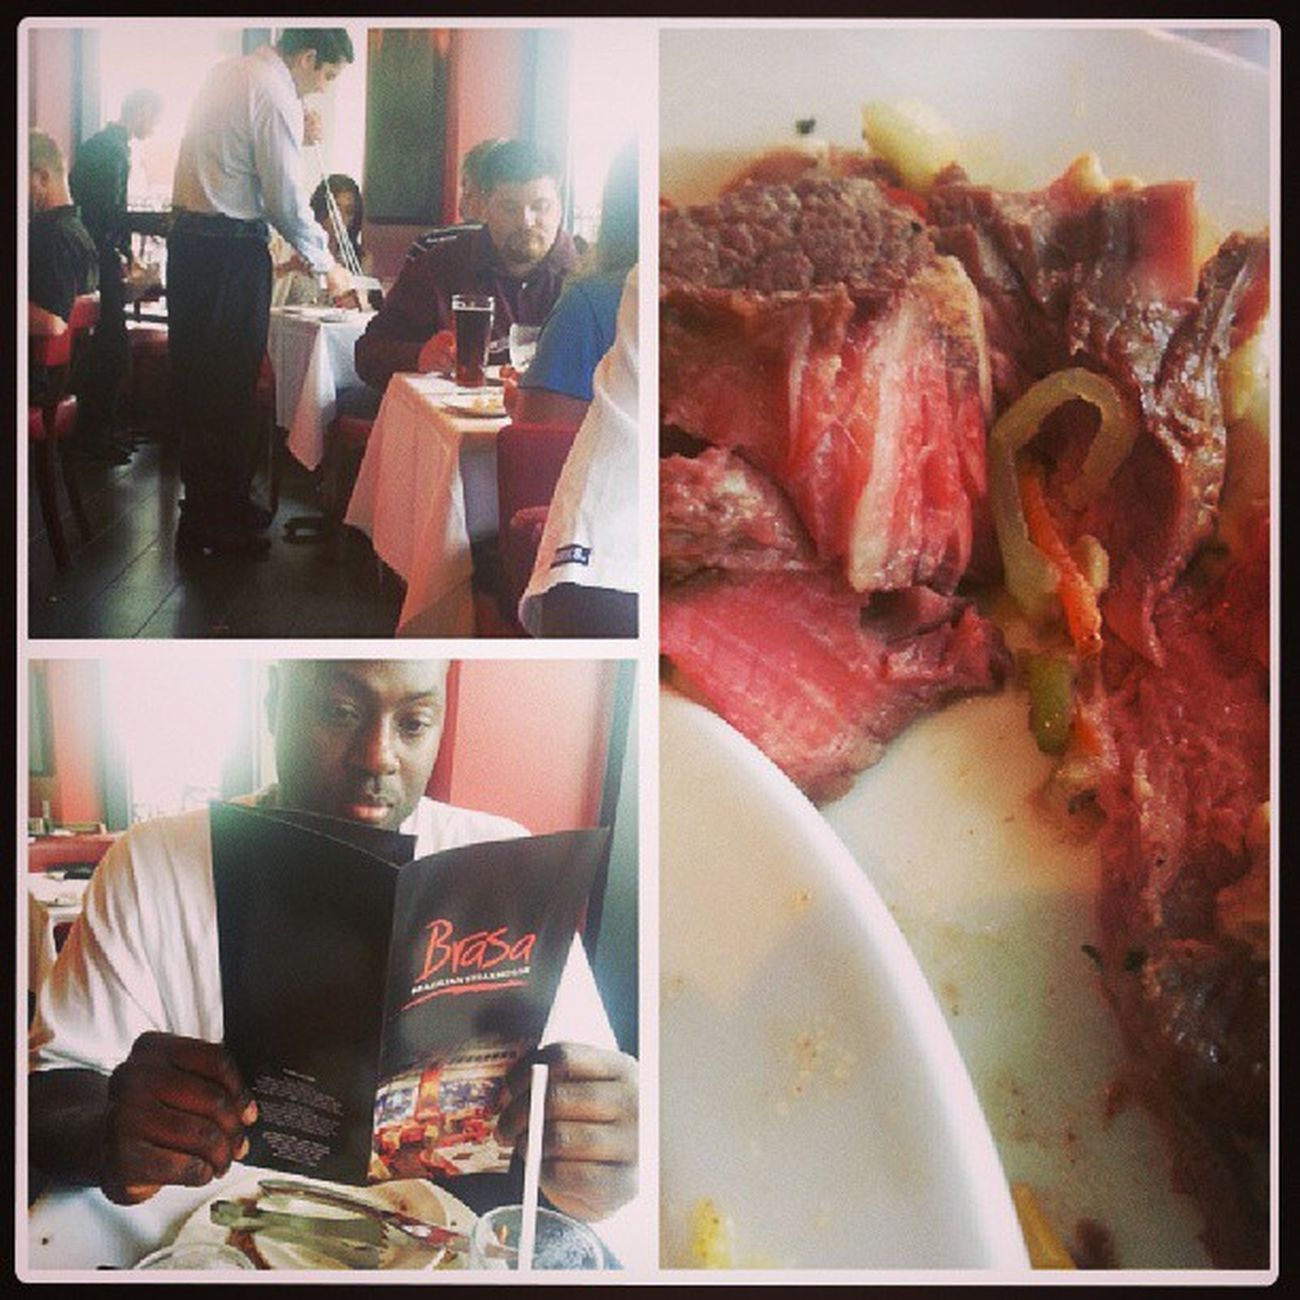 Leighton and I went to our first Brazilian steak house, it was good but some of the meat was too undercooked for me. Brasa BrazilionSteakHouse Hiltonhotel UnderCooked ILikeMyMeatWELLDone